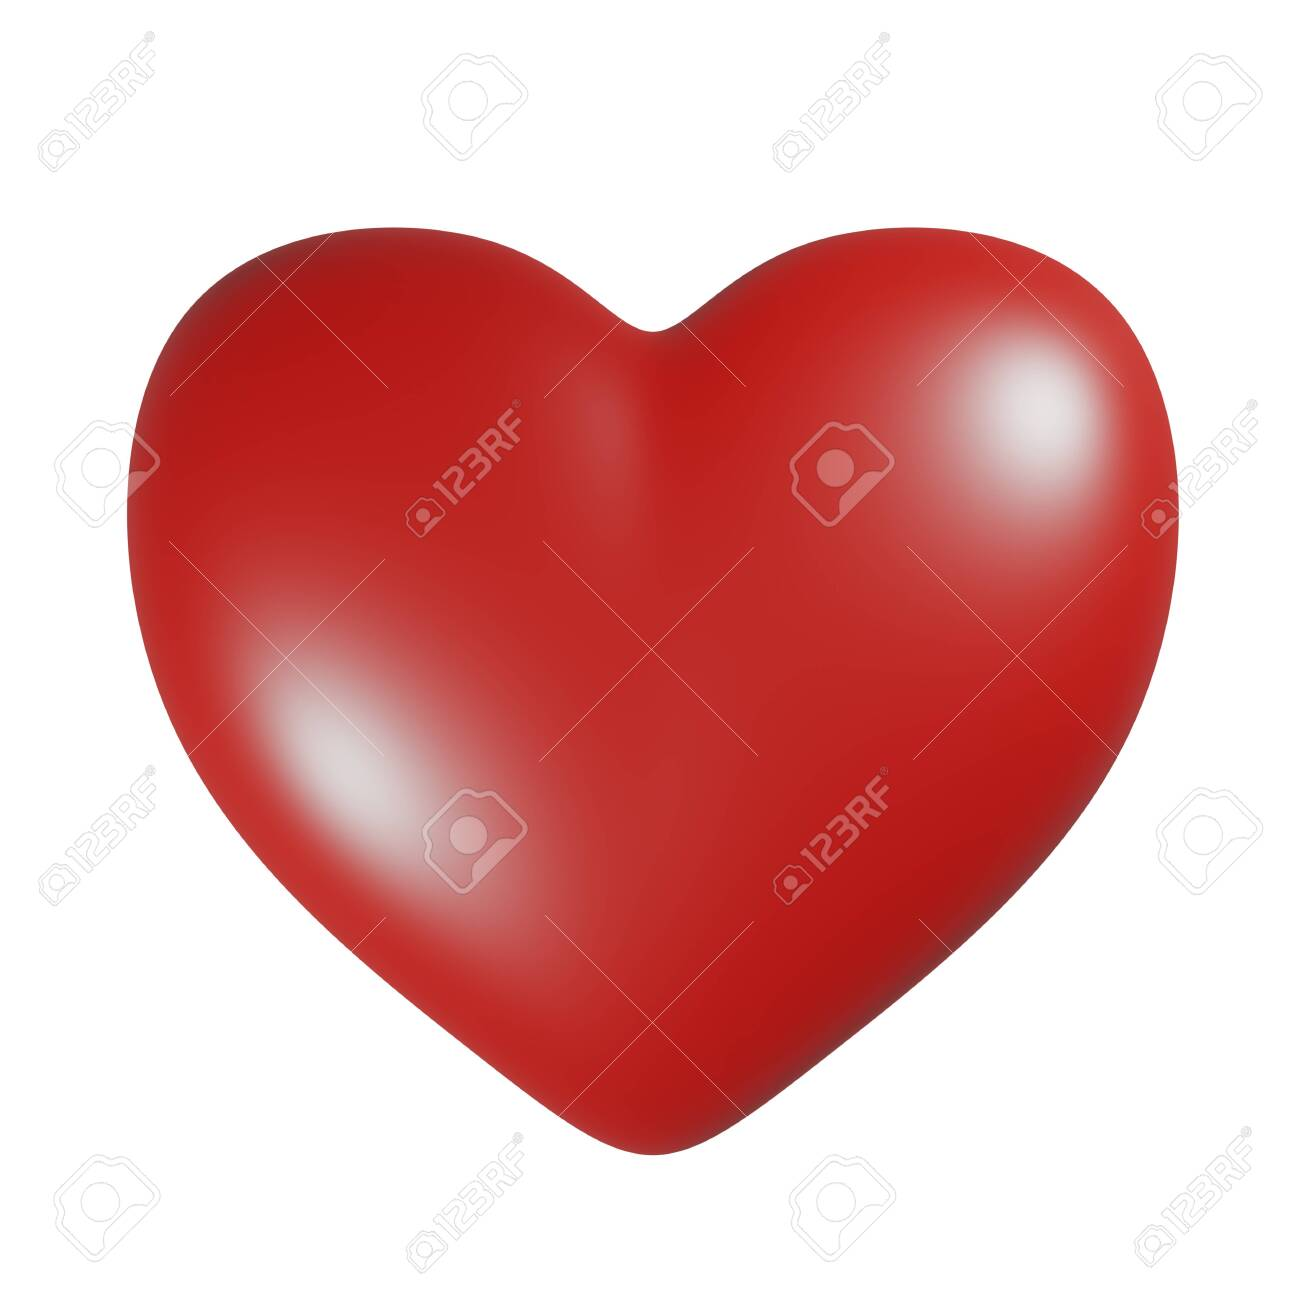 Simple red heart icon isolated on white background. 3D rendering illustration - 150053143